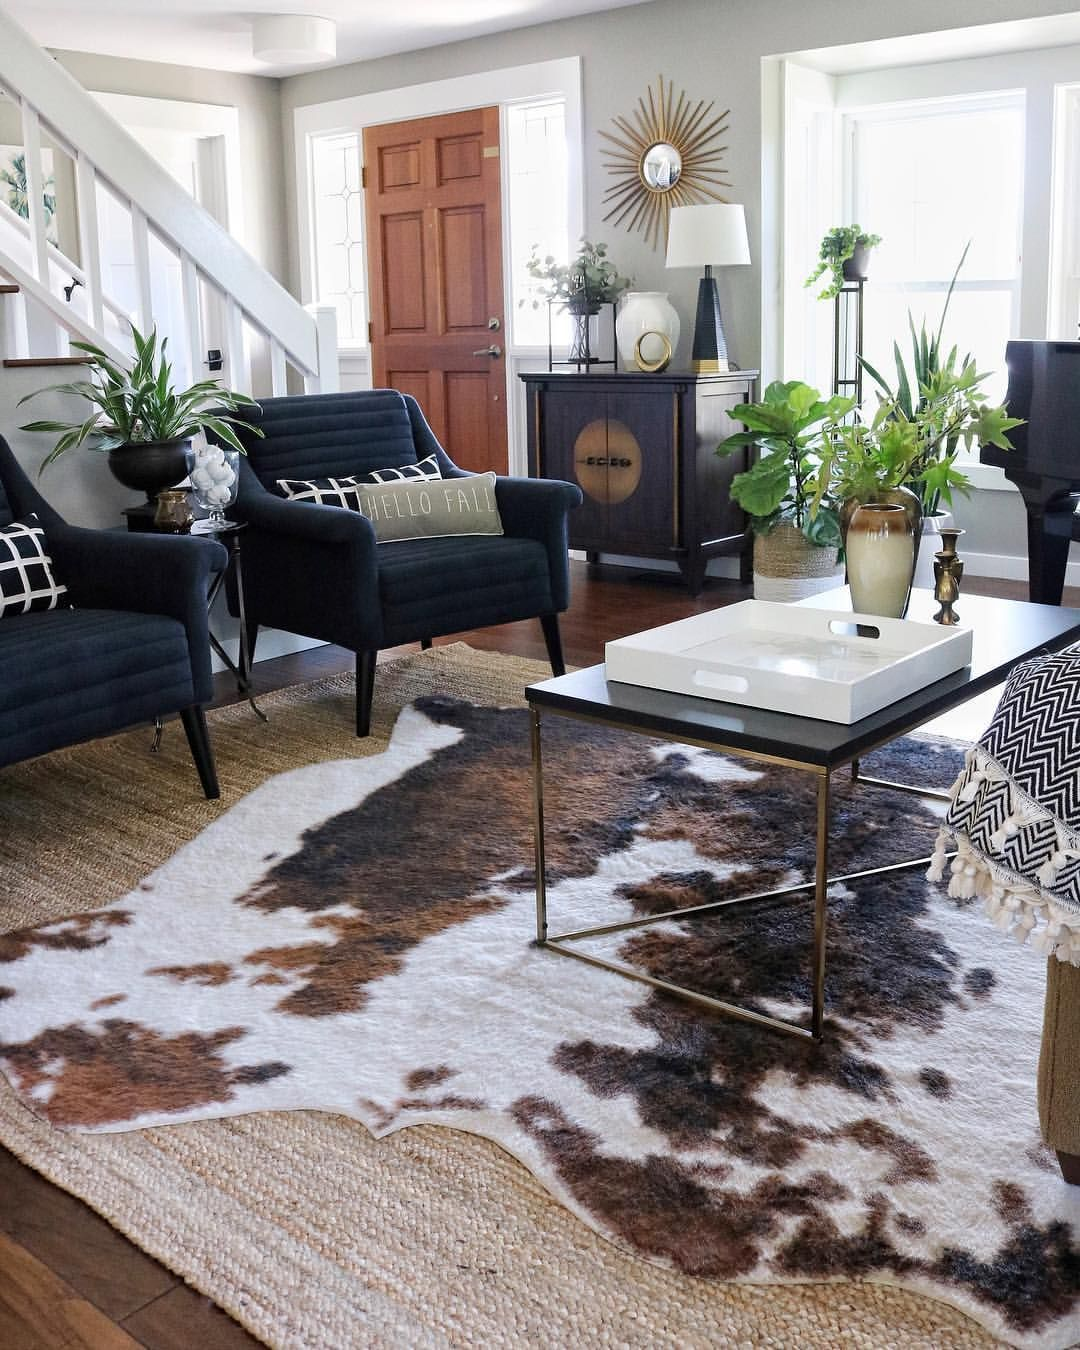 Small Living Room Rug Ideas: Chic Ideas For The Perfect Small Living Room